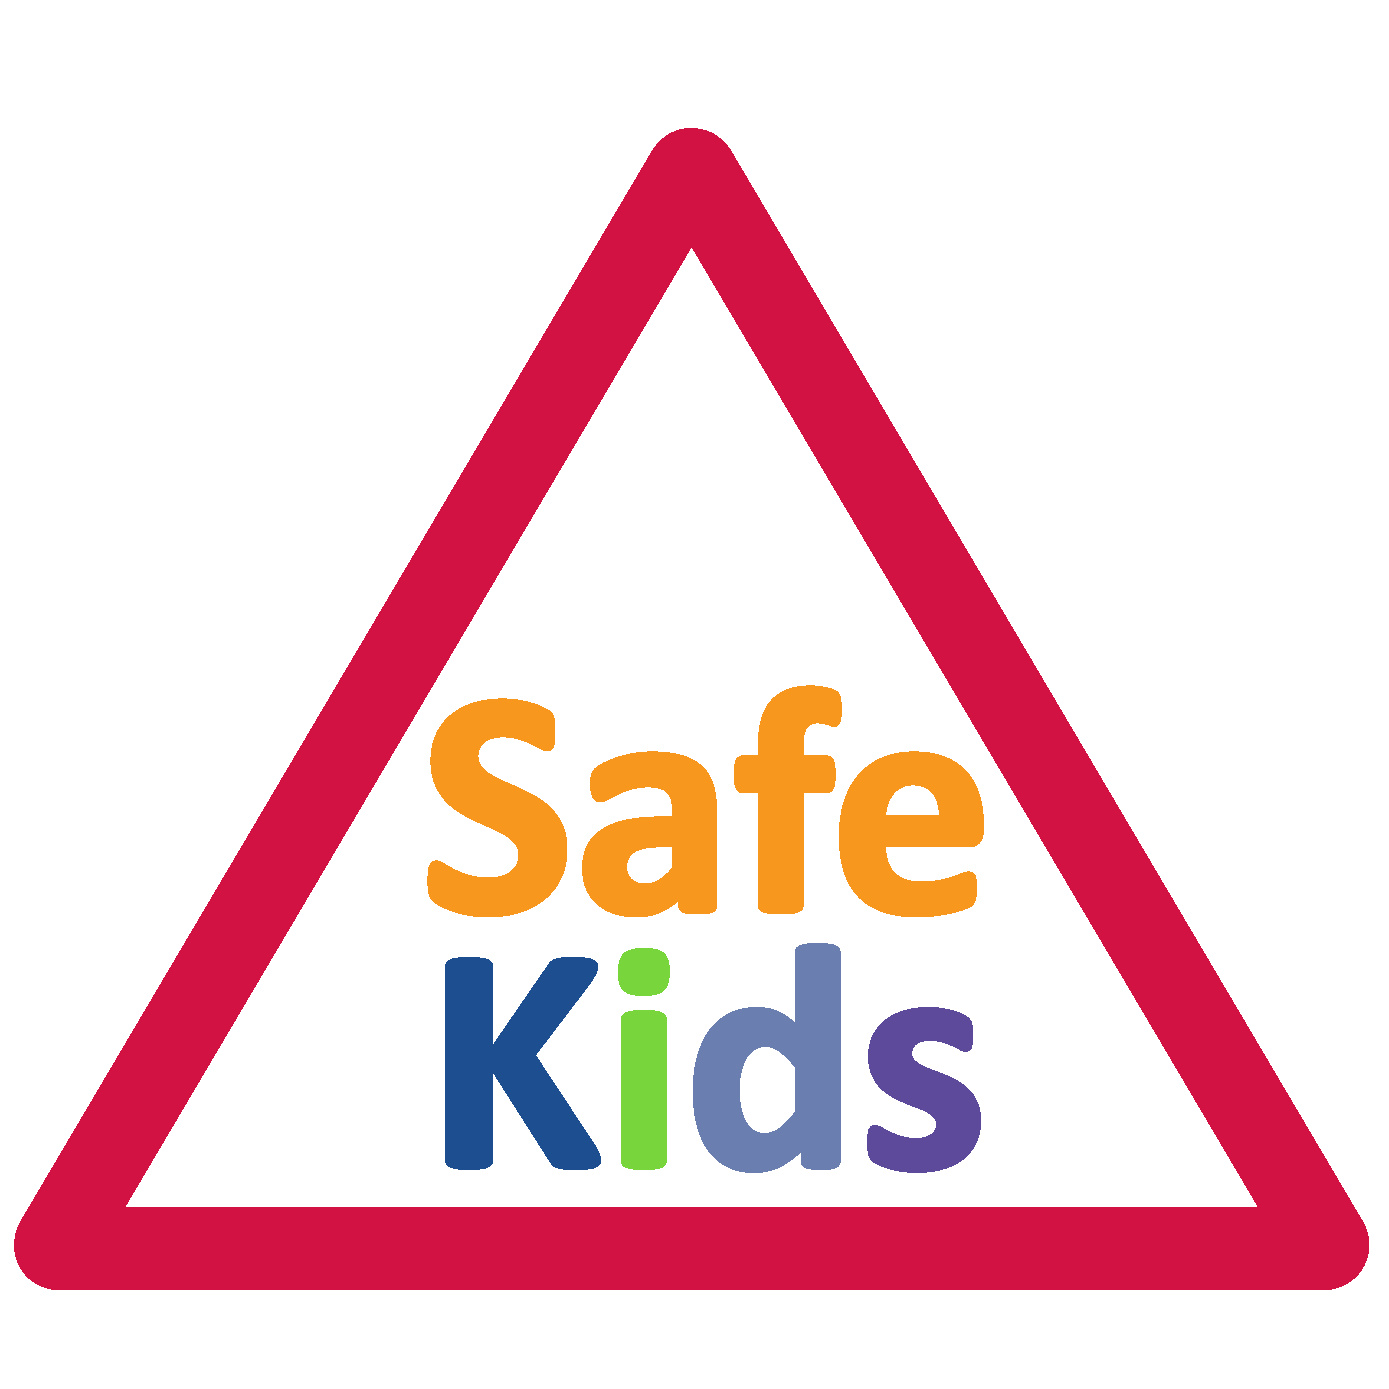 Electricity clipart electricity safety. Just for kids central